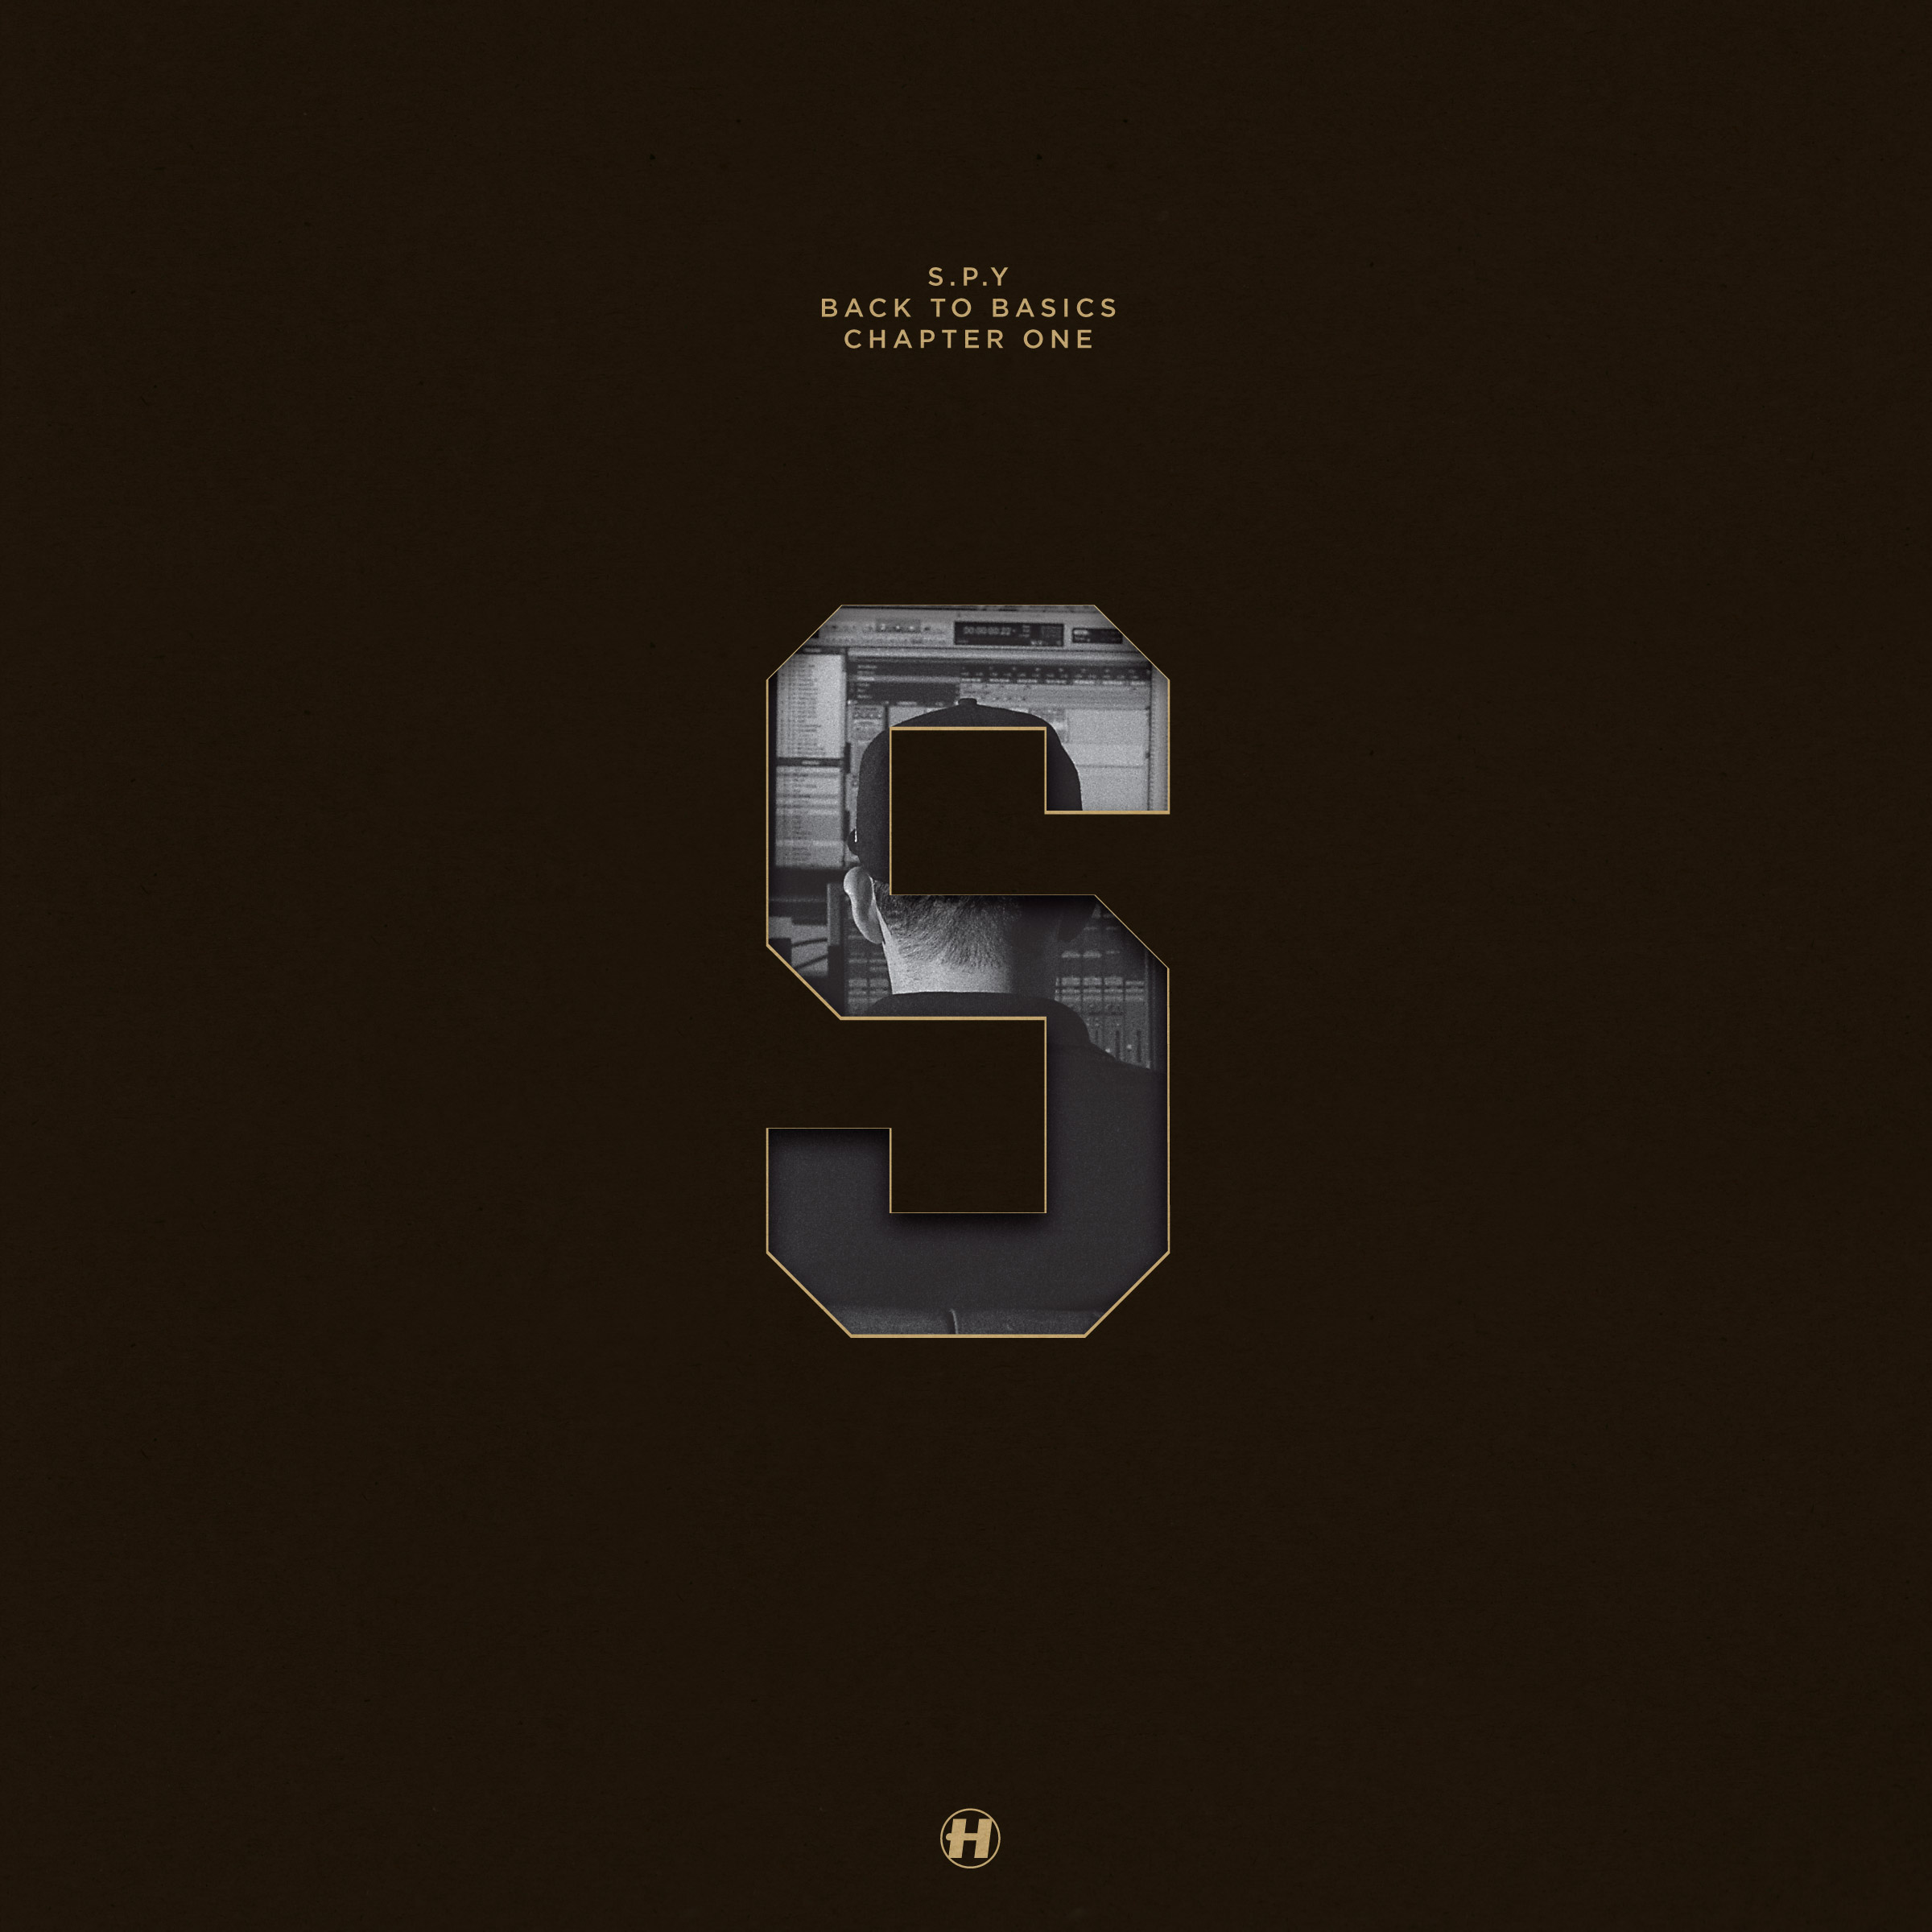 S.P.Y/BACK TO BASICS CHAPTER ONE 4LP